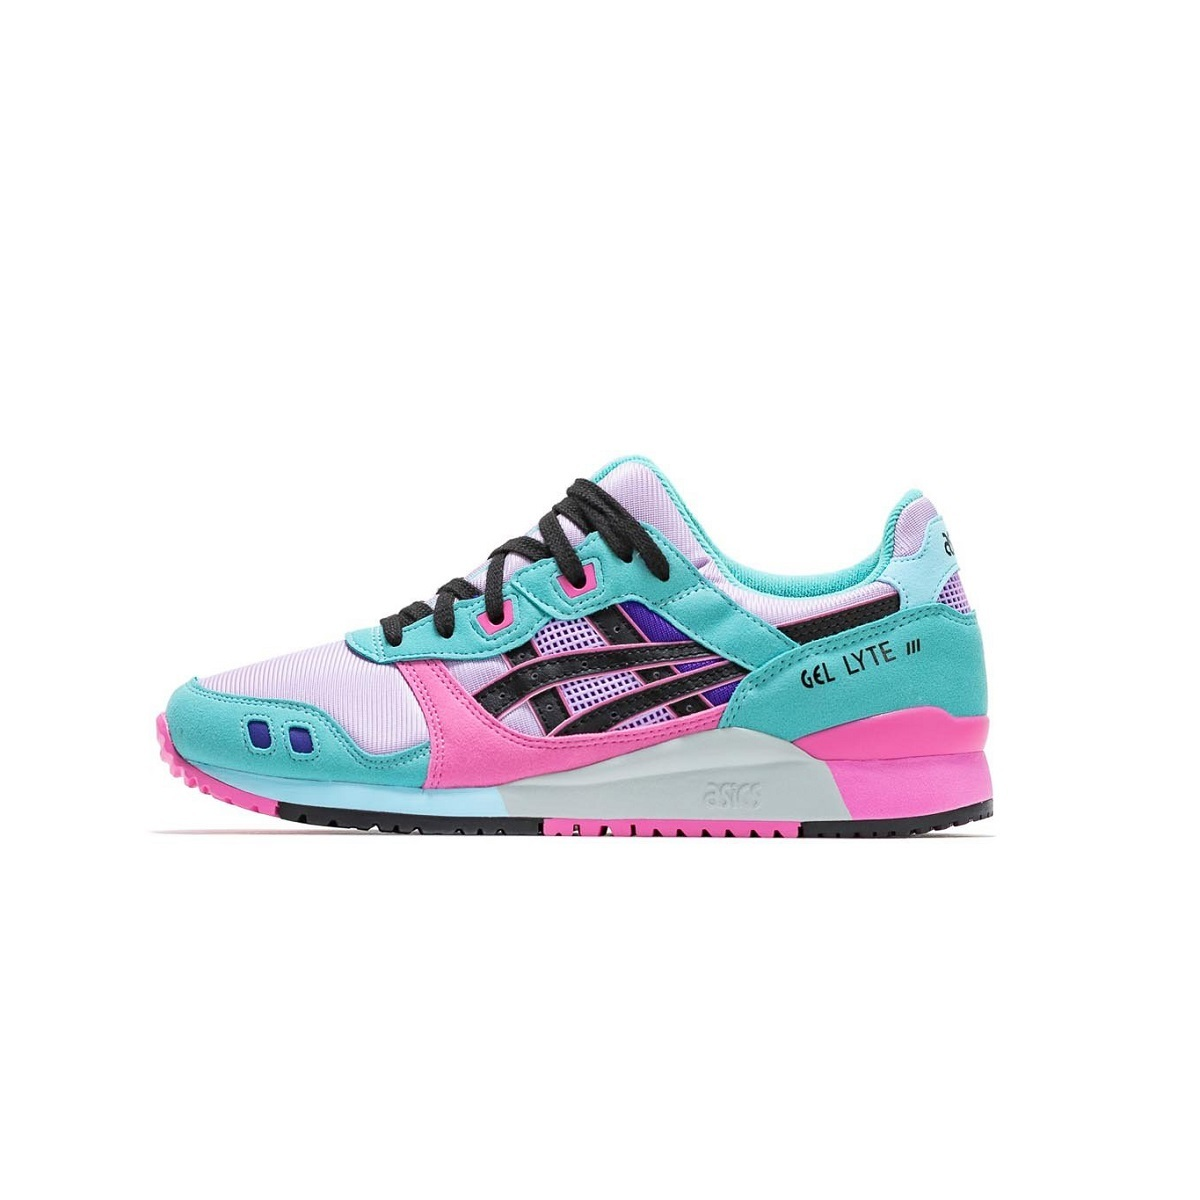 Primary image for Asics Gel-Lyte III OG 30th Anniversary (Lilac Tech Dragon Fruit Multicolor) Men